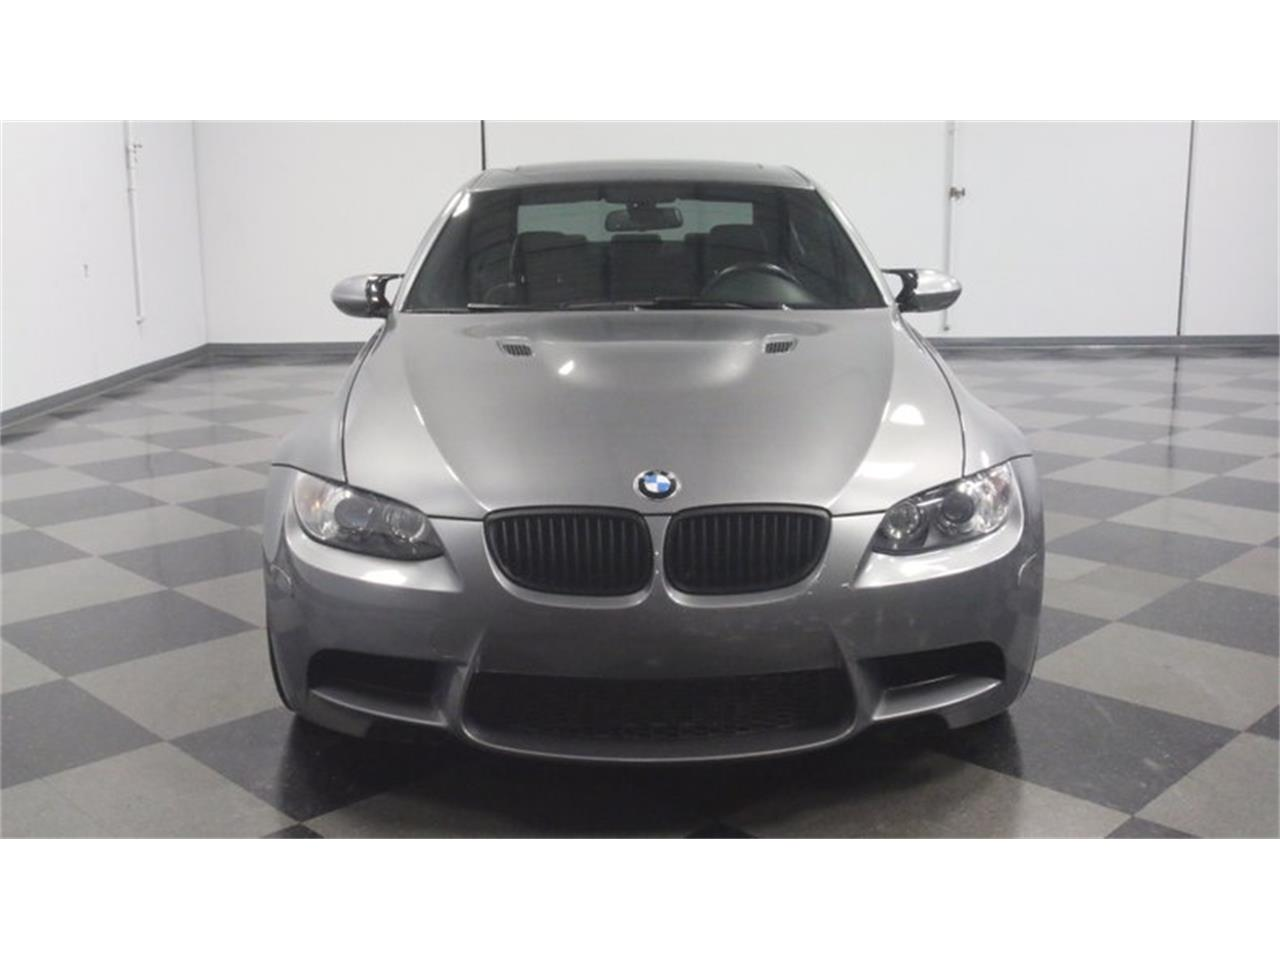 2010 BMW M3 for sale in Lithia Springs, GA – photo 19